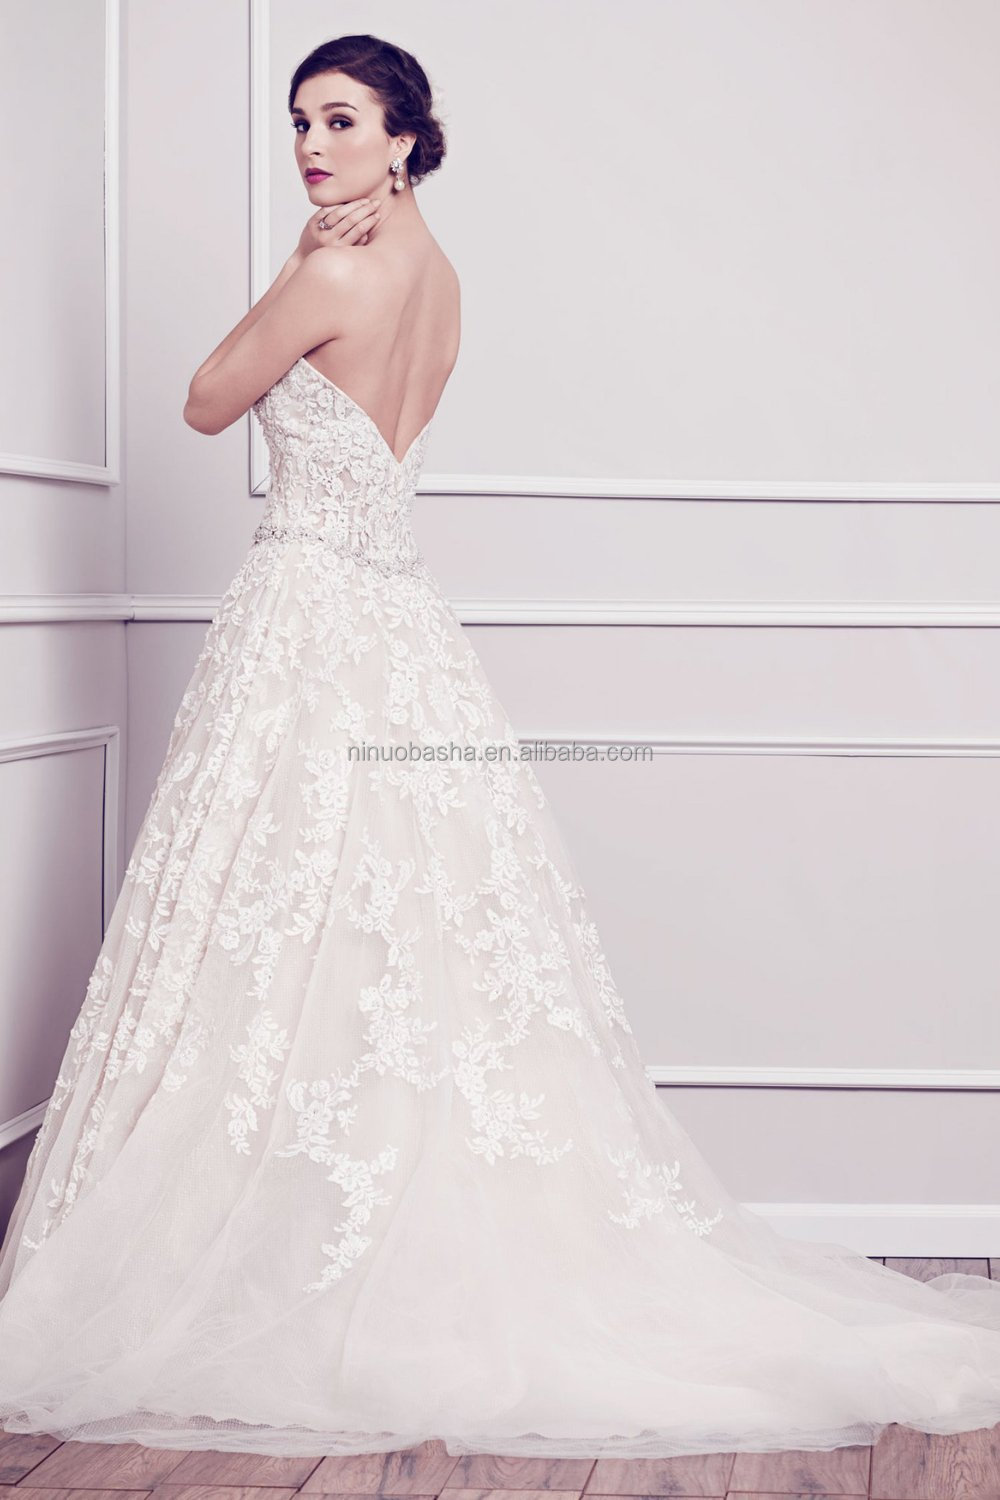 Low V Back Wedding Dresses : Admirable ball gown wedding dress sweetheart v shaped low back